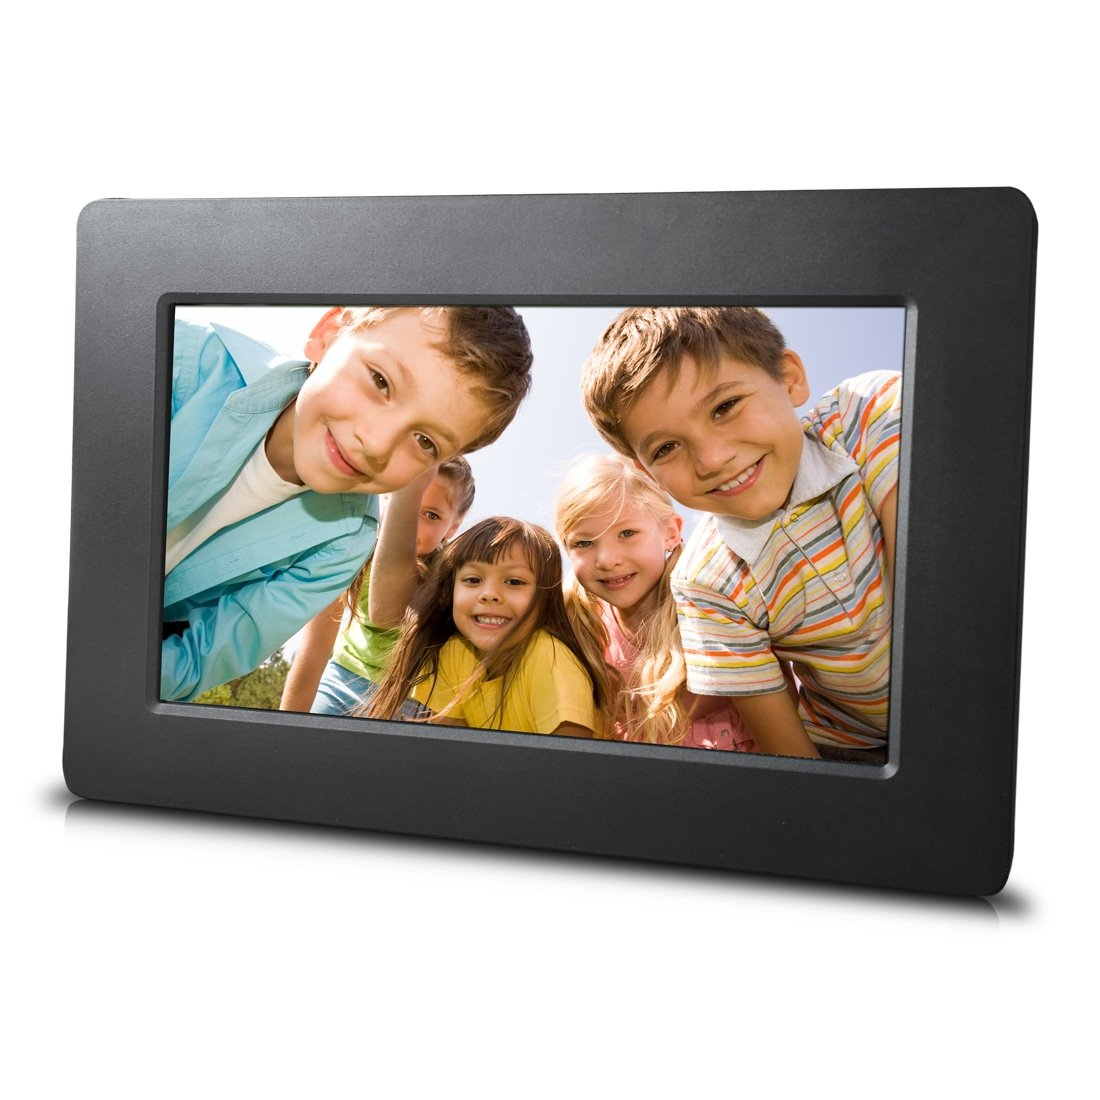 Sungale DPF710 7' Digital Photo Frame with Ultra Slim Design, Black SCTP Inc.